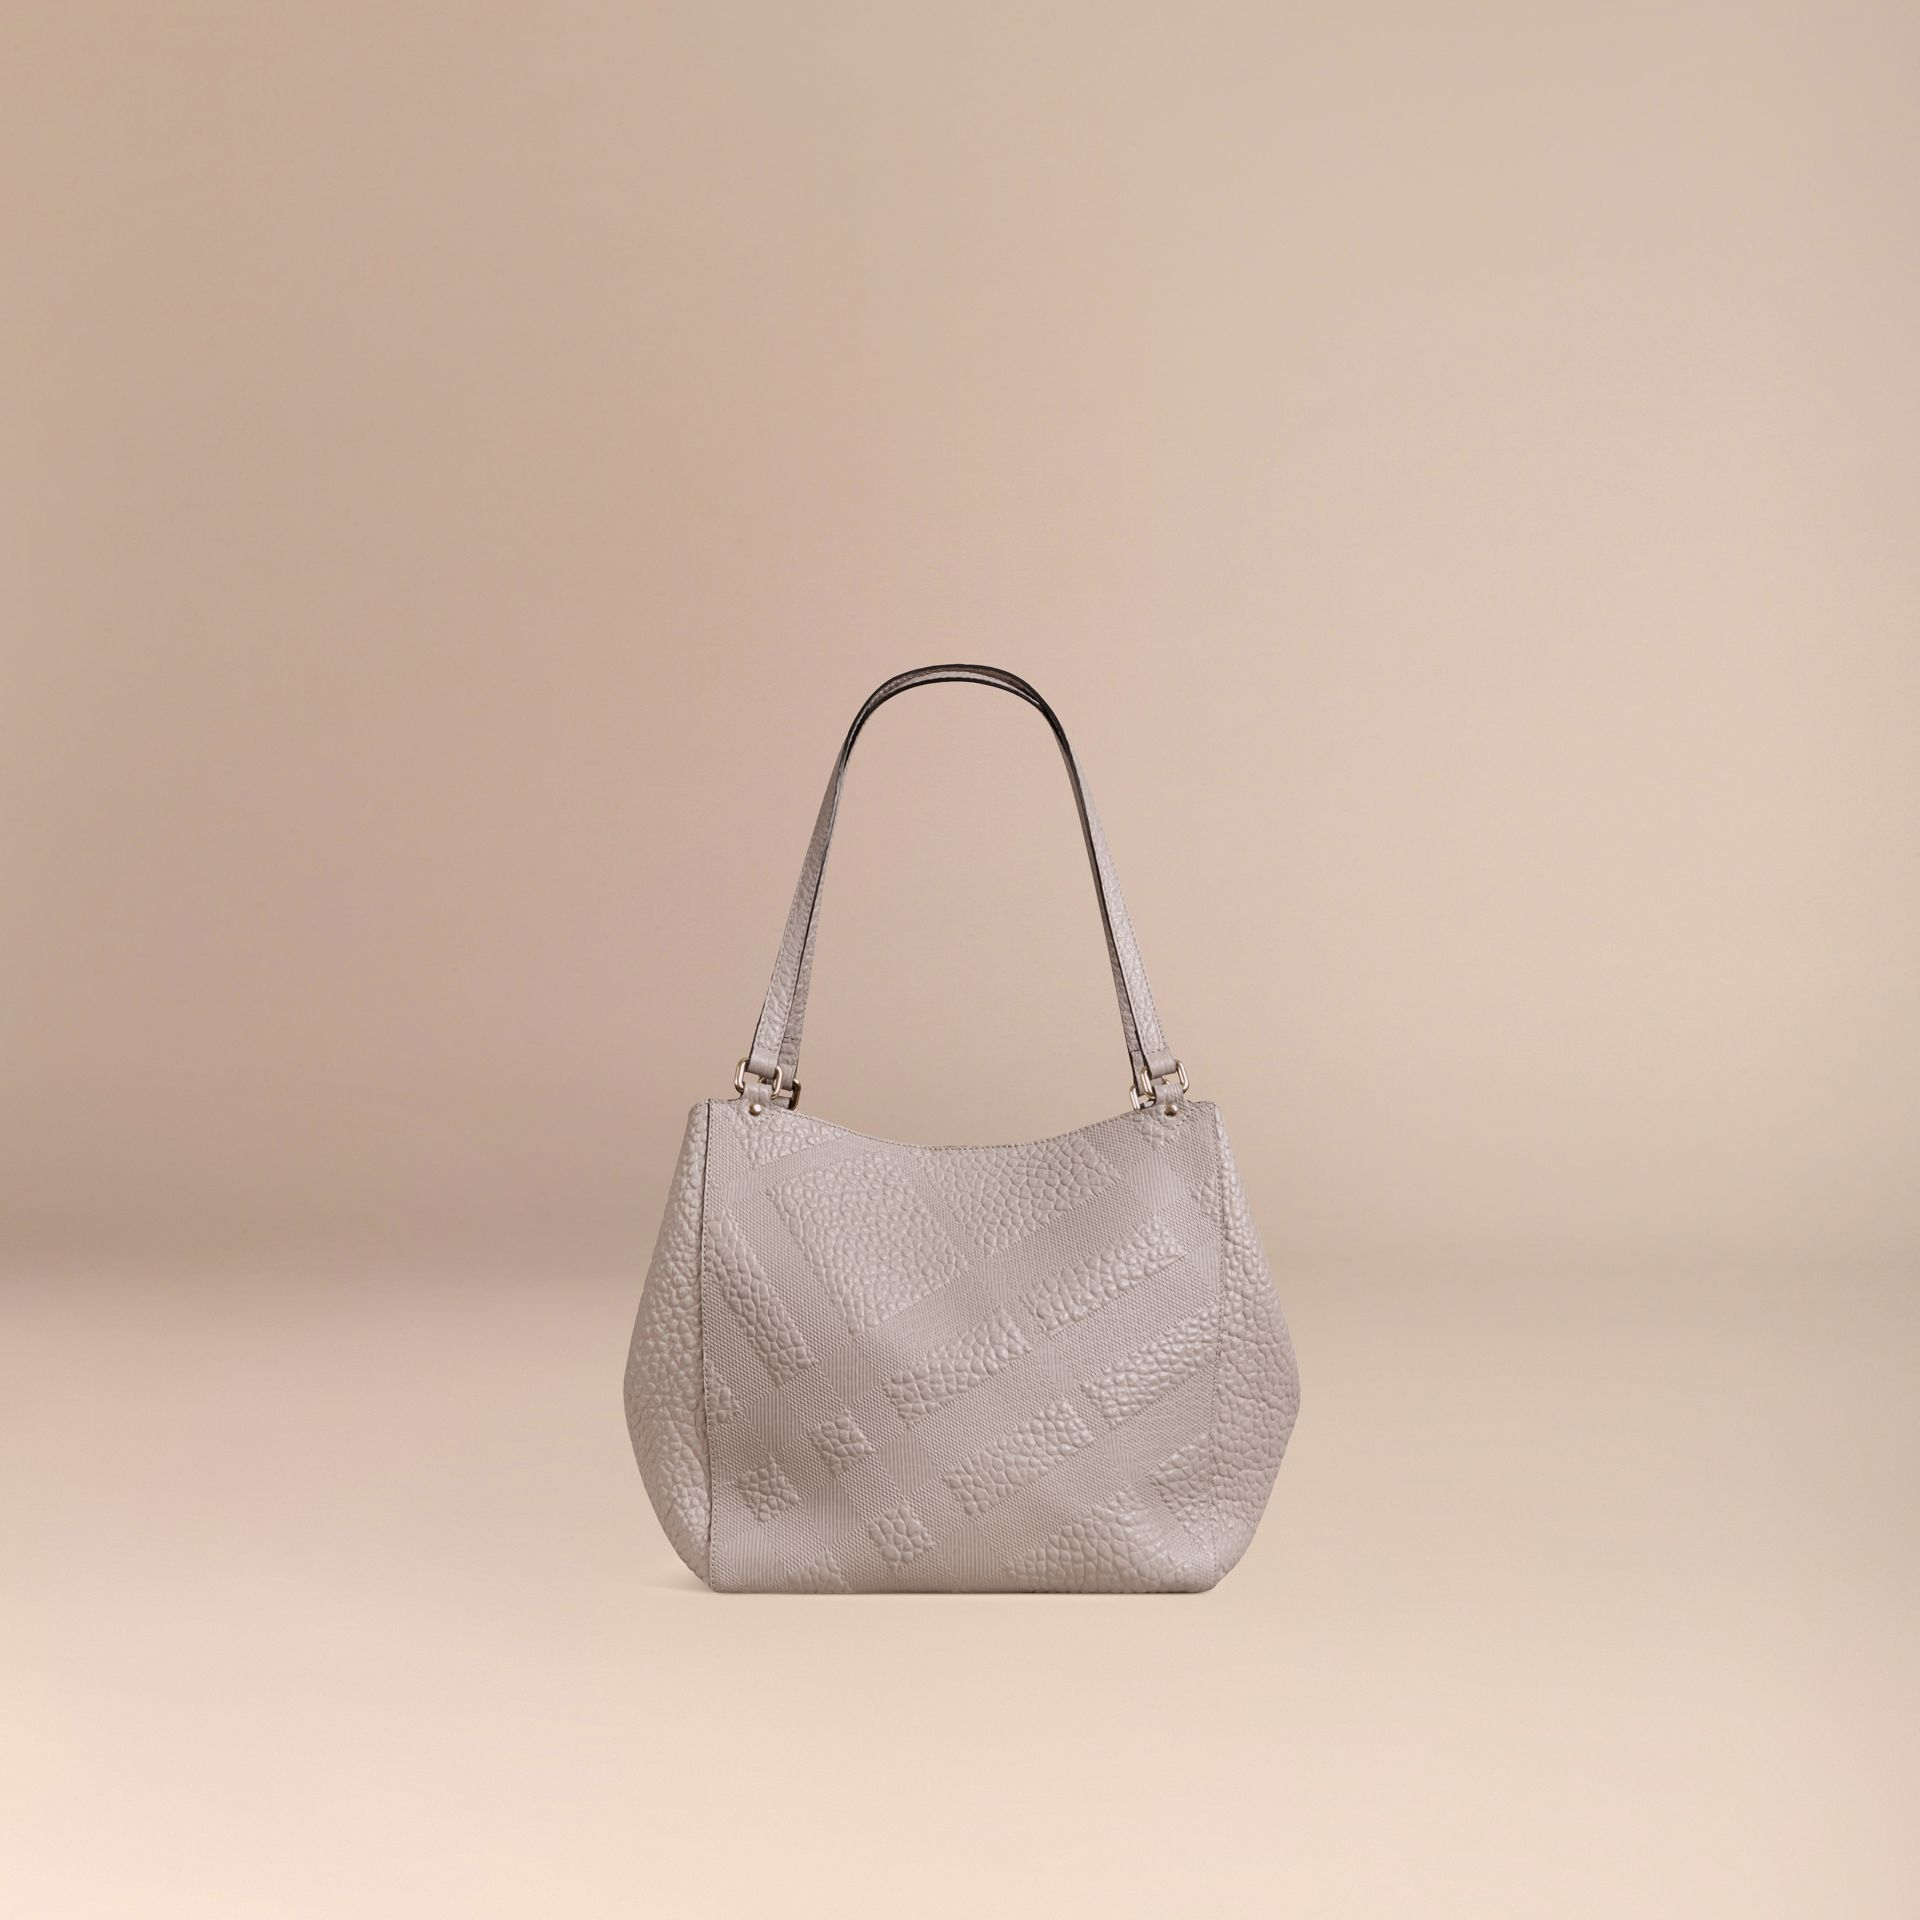 Gris pâle Petit sac The Canter en cuir avec motif check en relief Gris Pâle - photo de la galerie 4